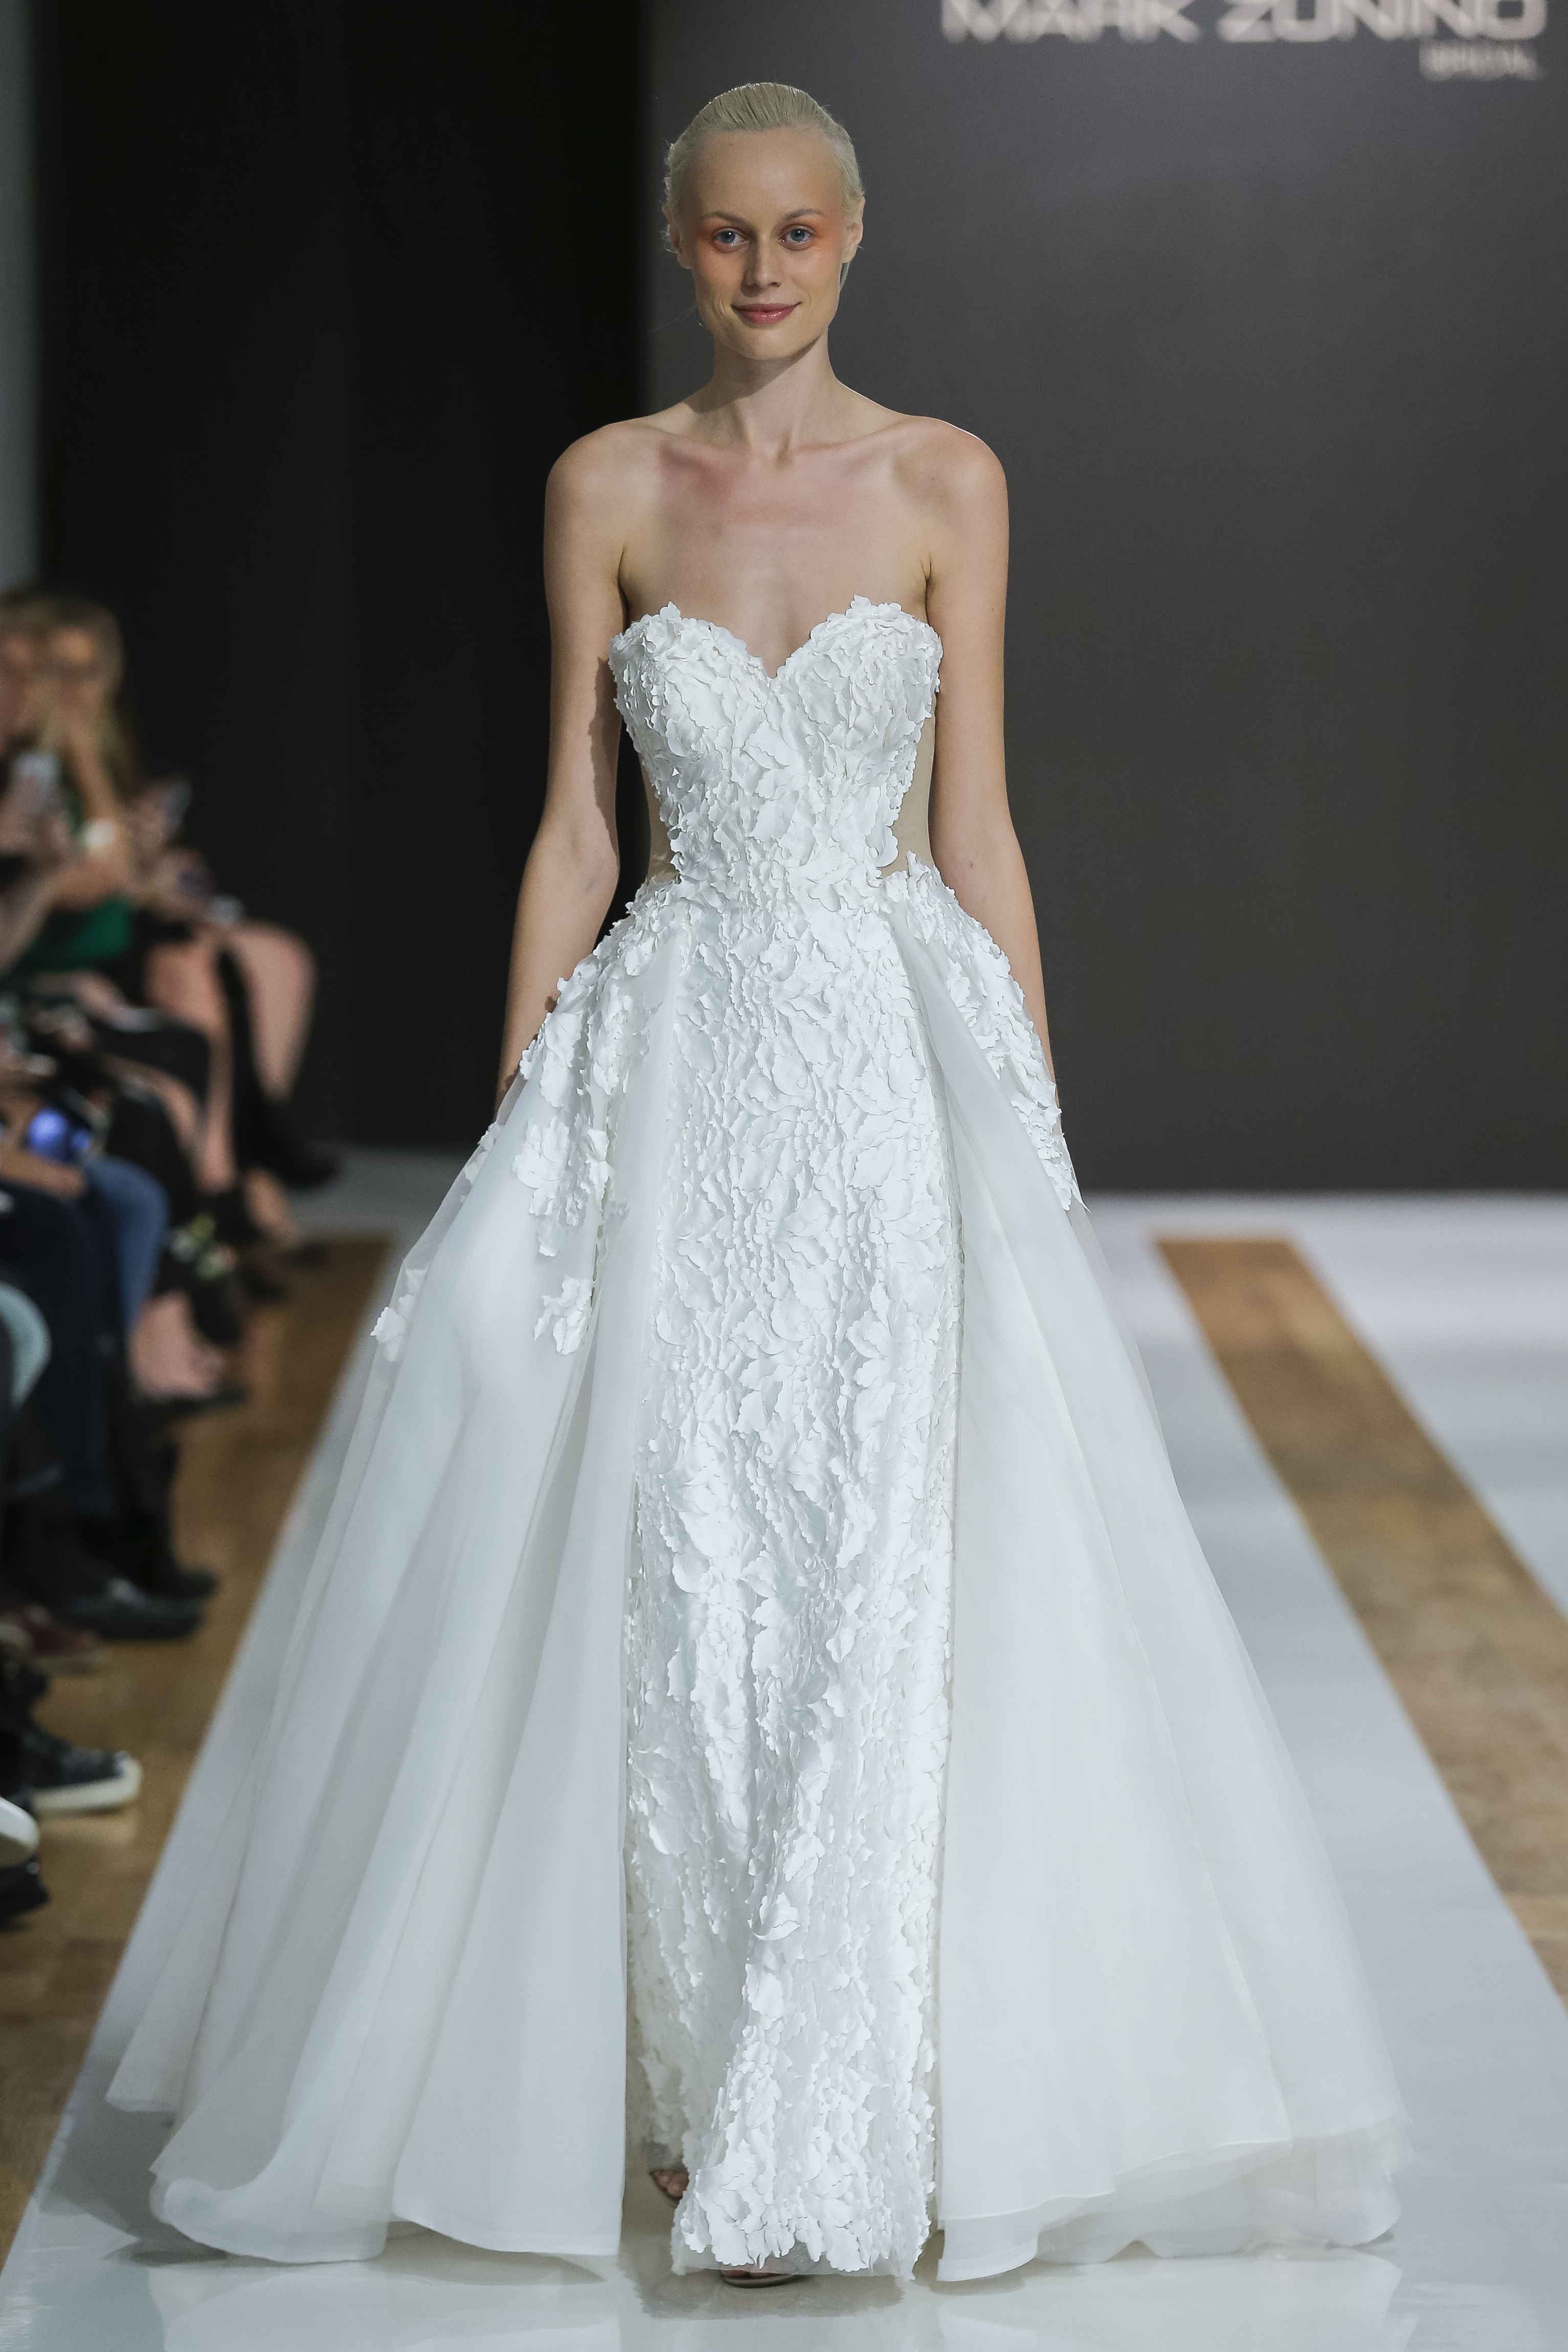 MARK ZUNINO UNVEILS DEBUT BRIDAL COLLECTION | The Coordinated Bride